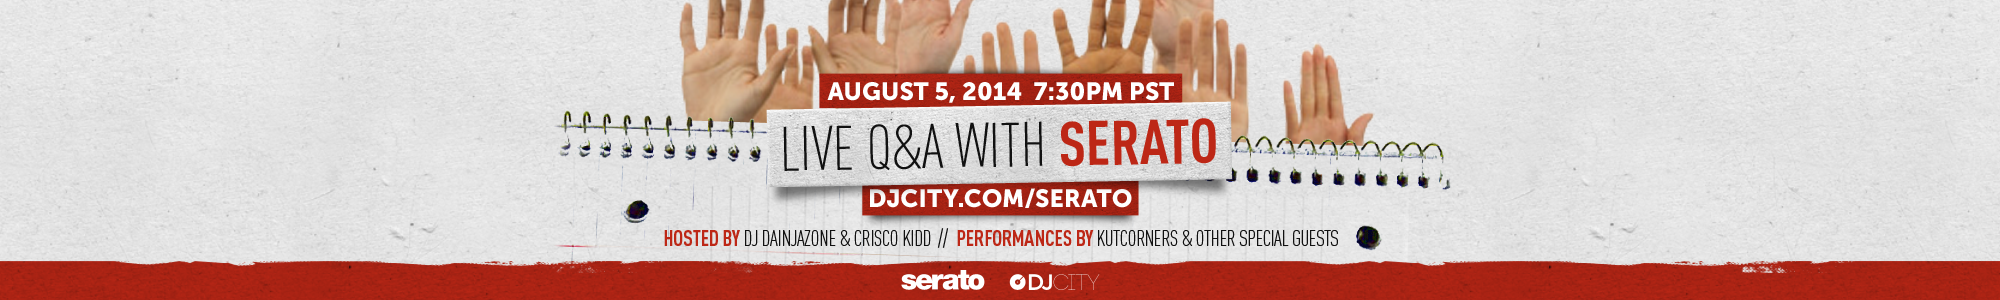 Live Q&A With Serato